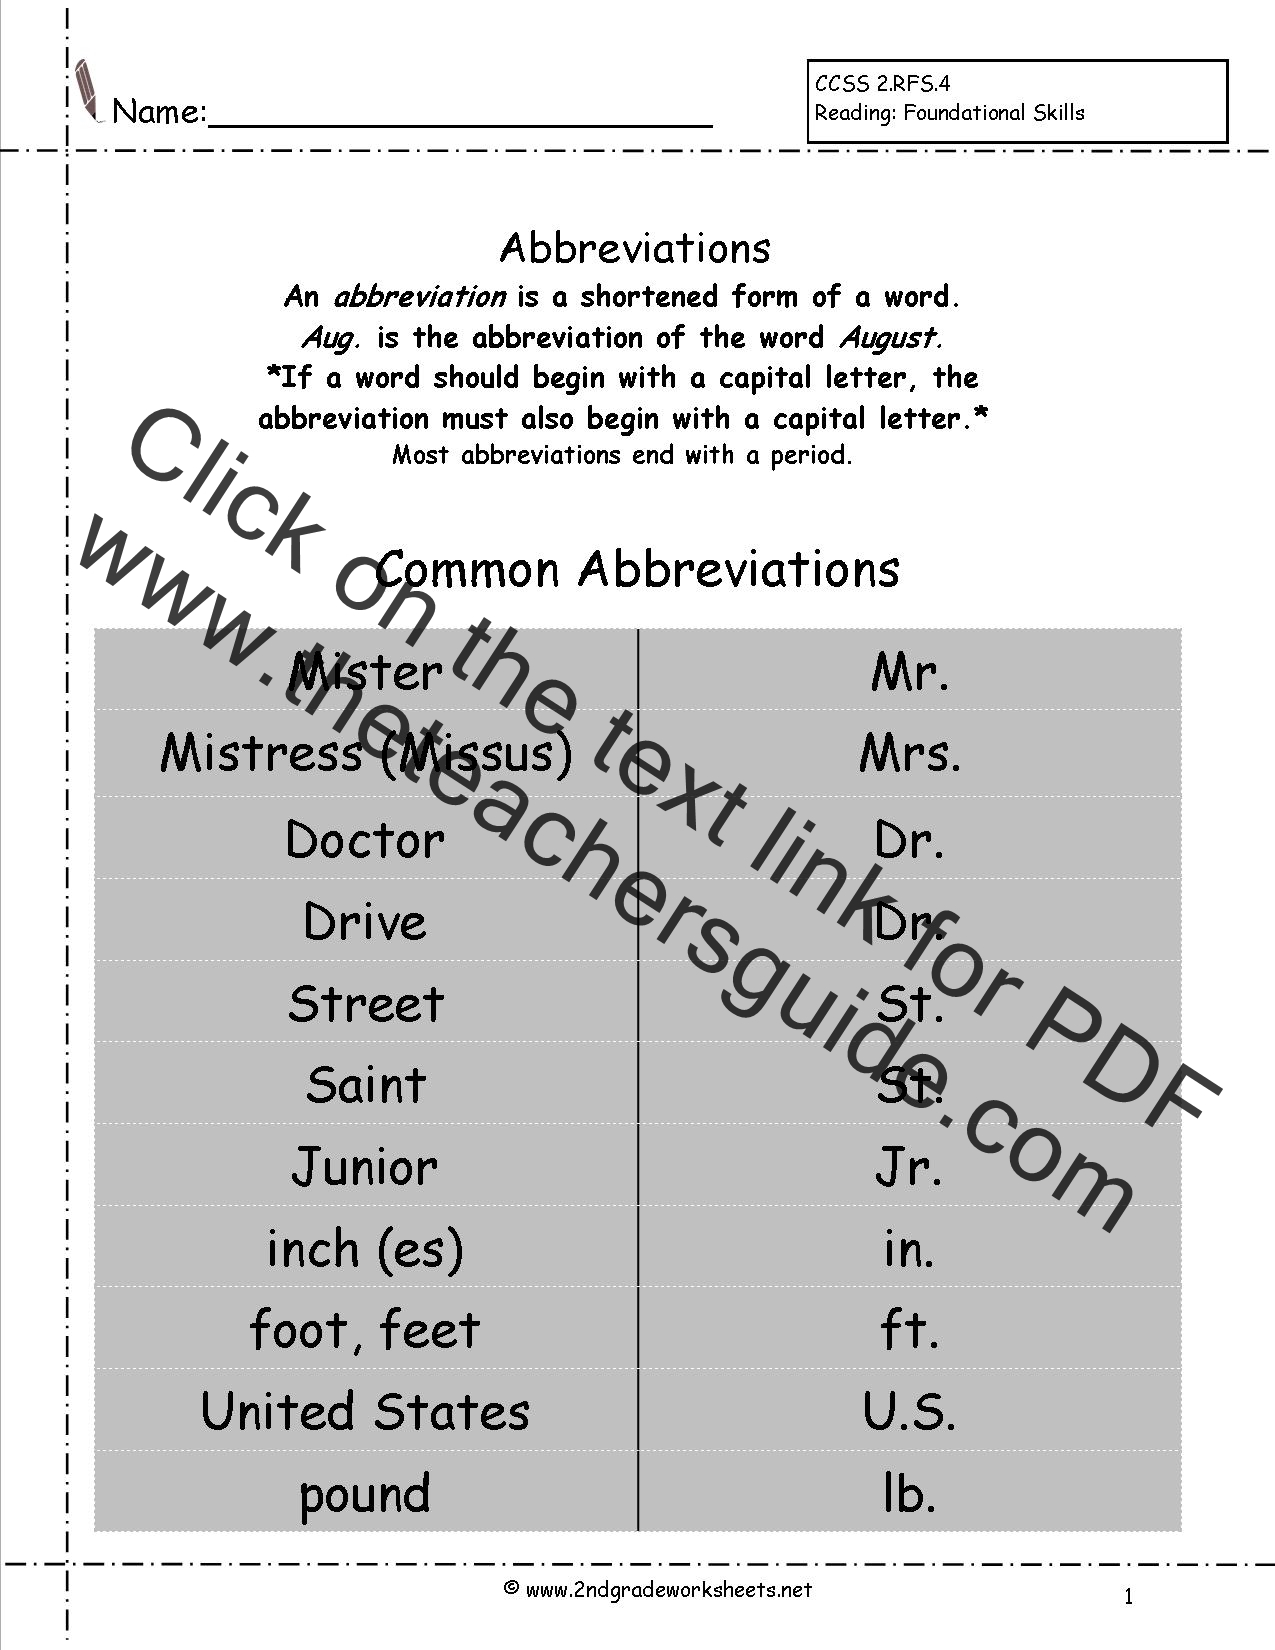 Worksheets Grammar Worksheets 2nd Grade free languagegrammar worksheets and printouts abbreviaitons worksheets